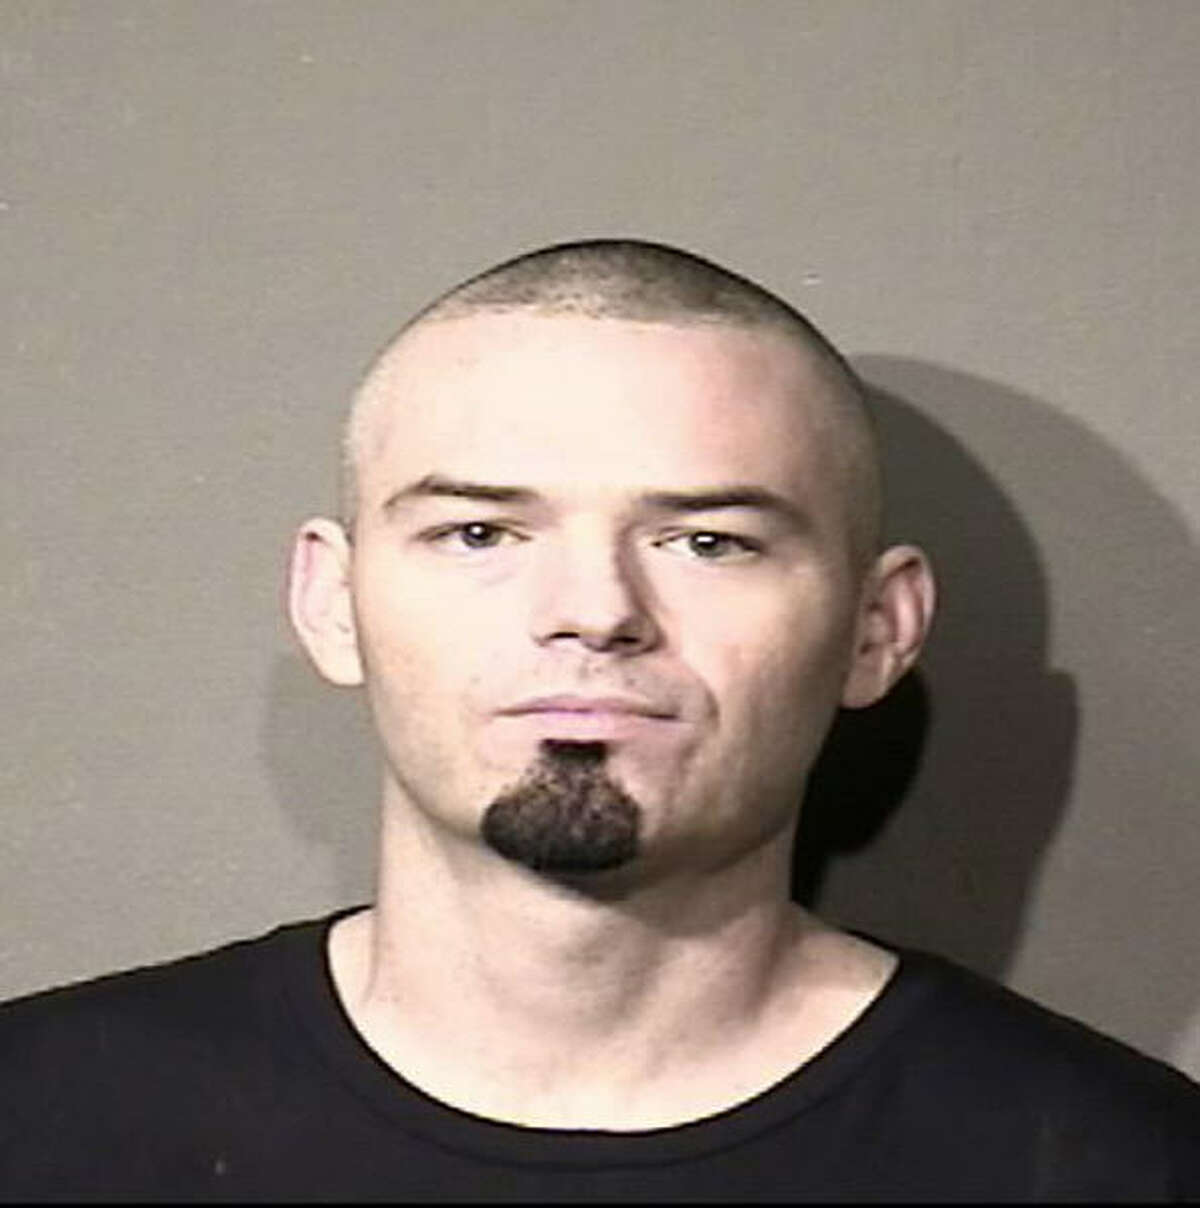 """Paul Slayton, aka """"Paul Wall,"""" appears in a Houston Police mug shot after his arrest on drug charges on Dec. 23, 2016."""